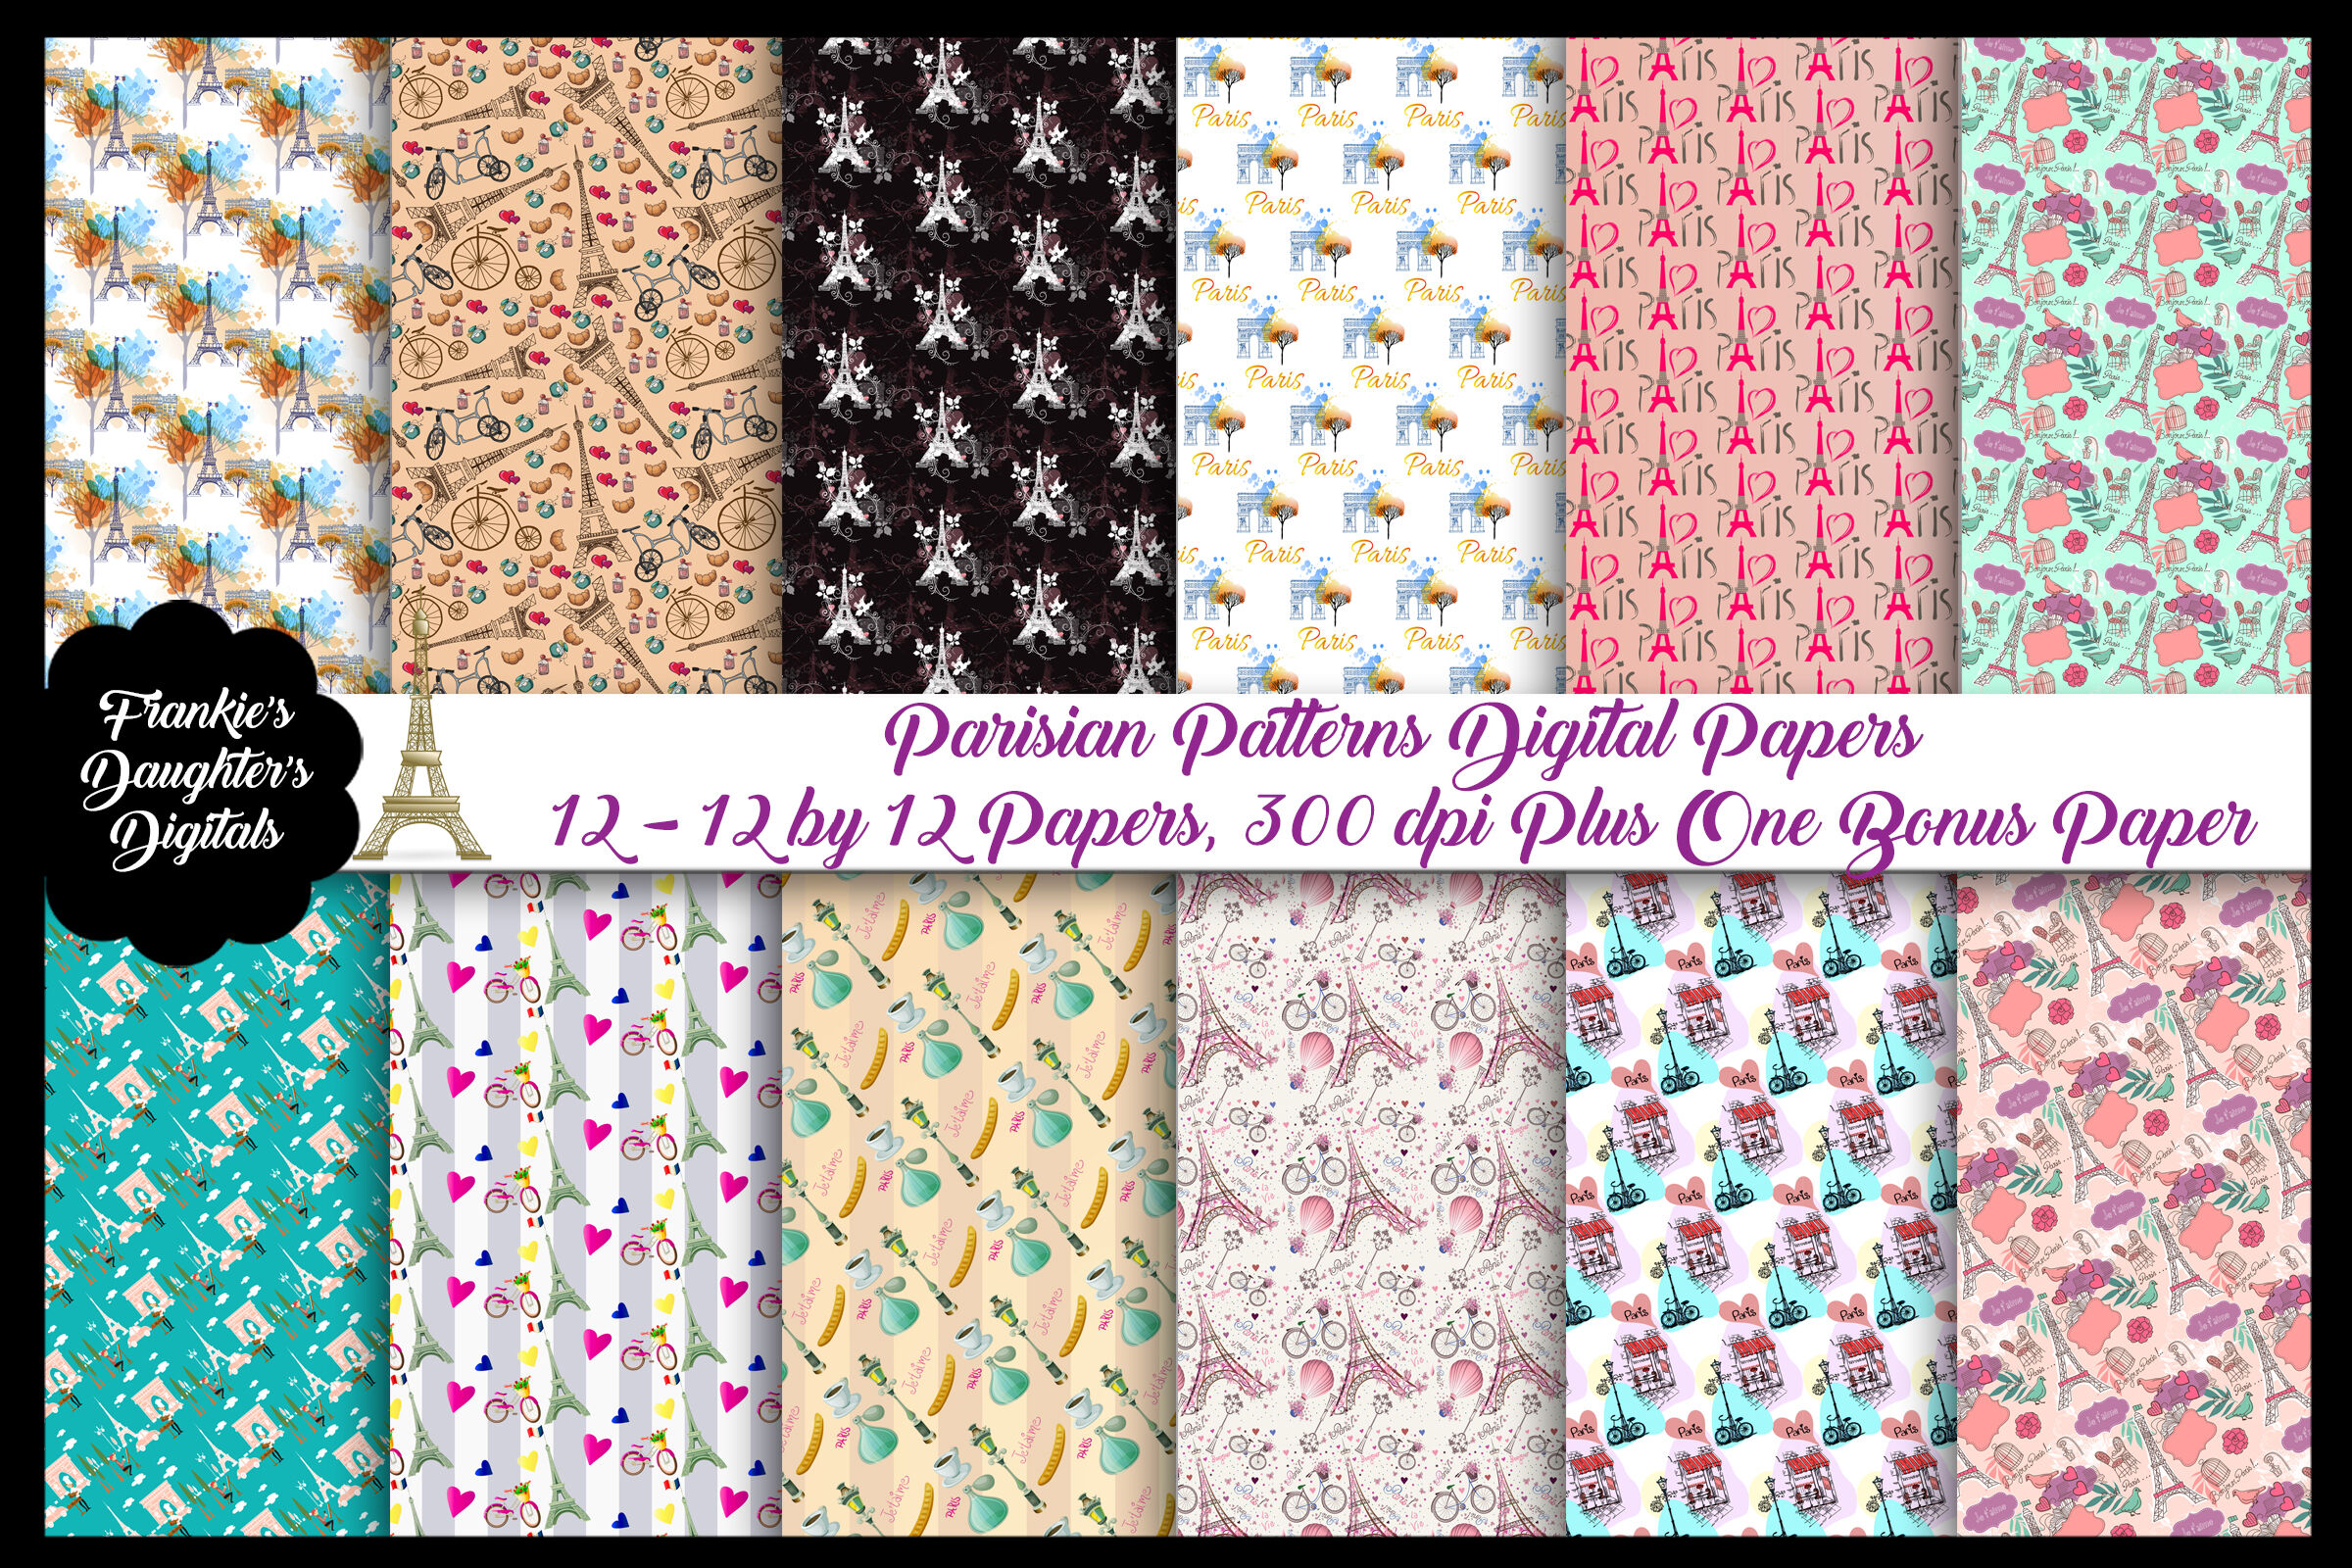 Paris French Patterns Digital Papers Plus 1 Bonus Paper By Me And